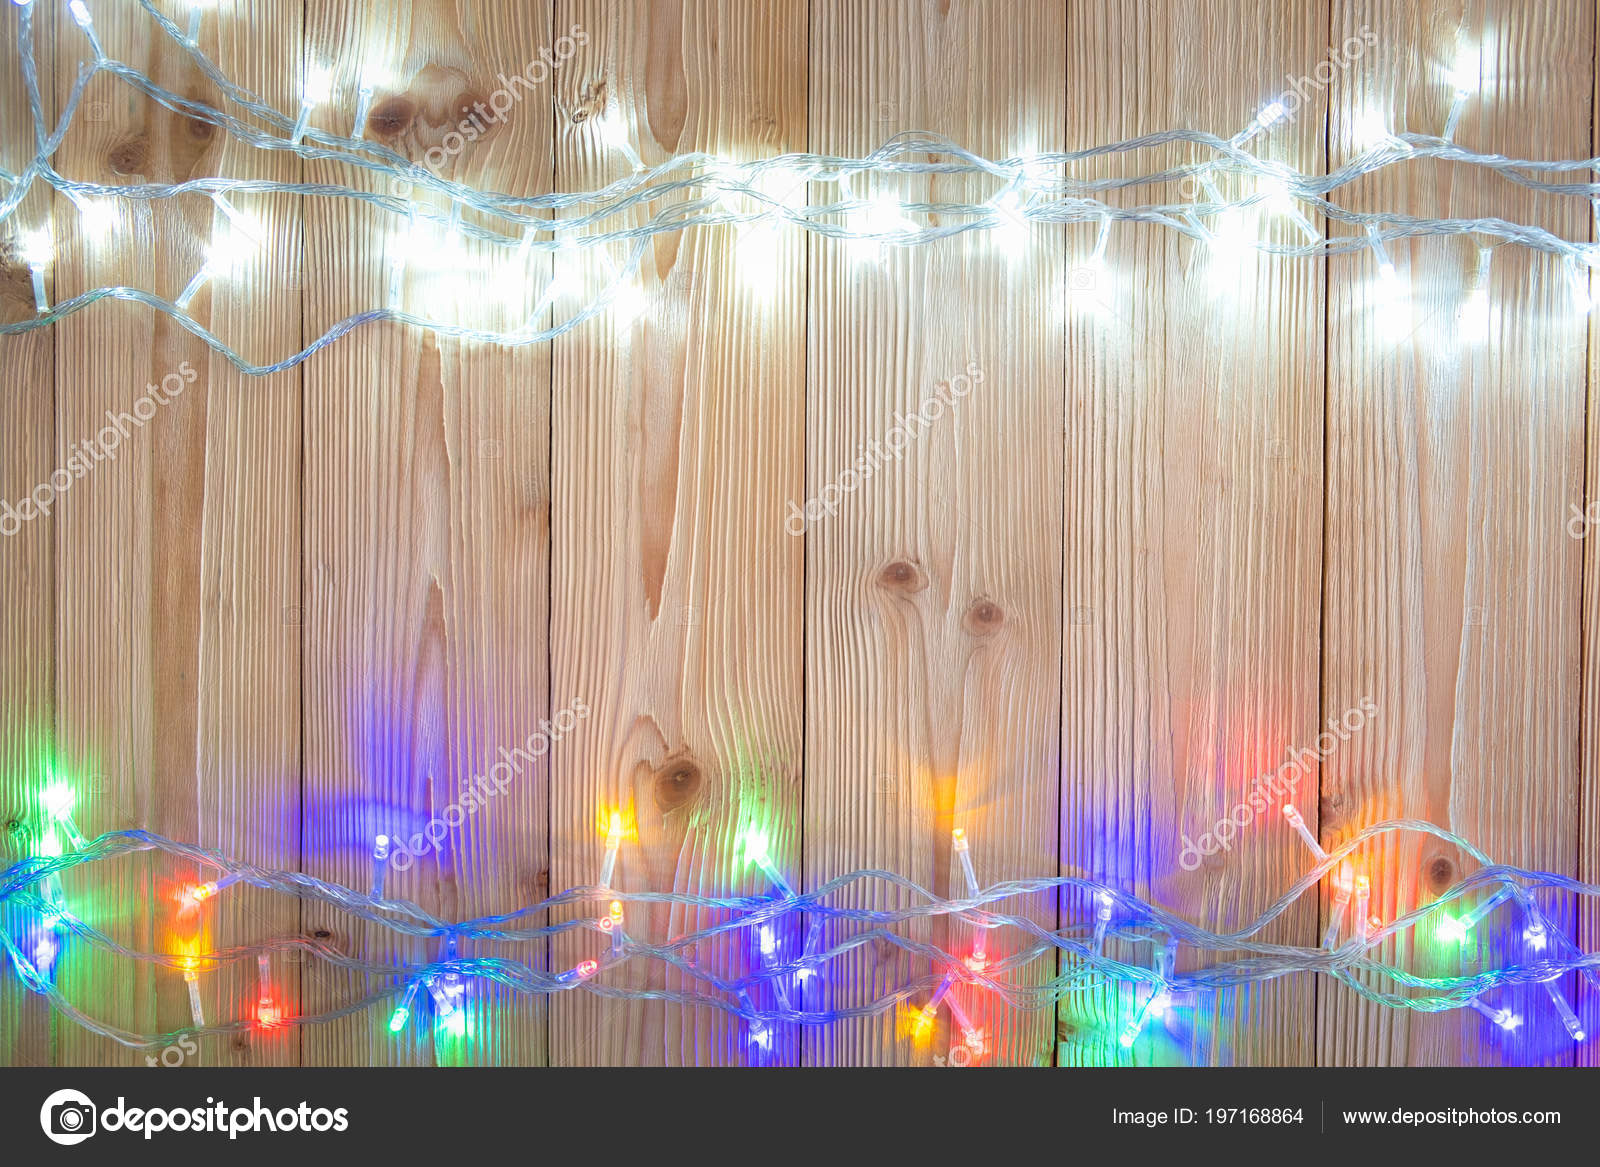 Fancy Blinker Light Bulbs Garlands Wreath Wood Table Christmas New — Stock Photo